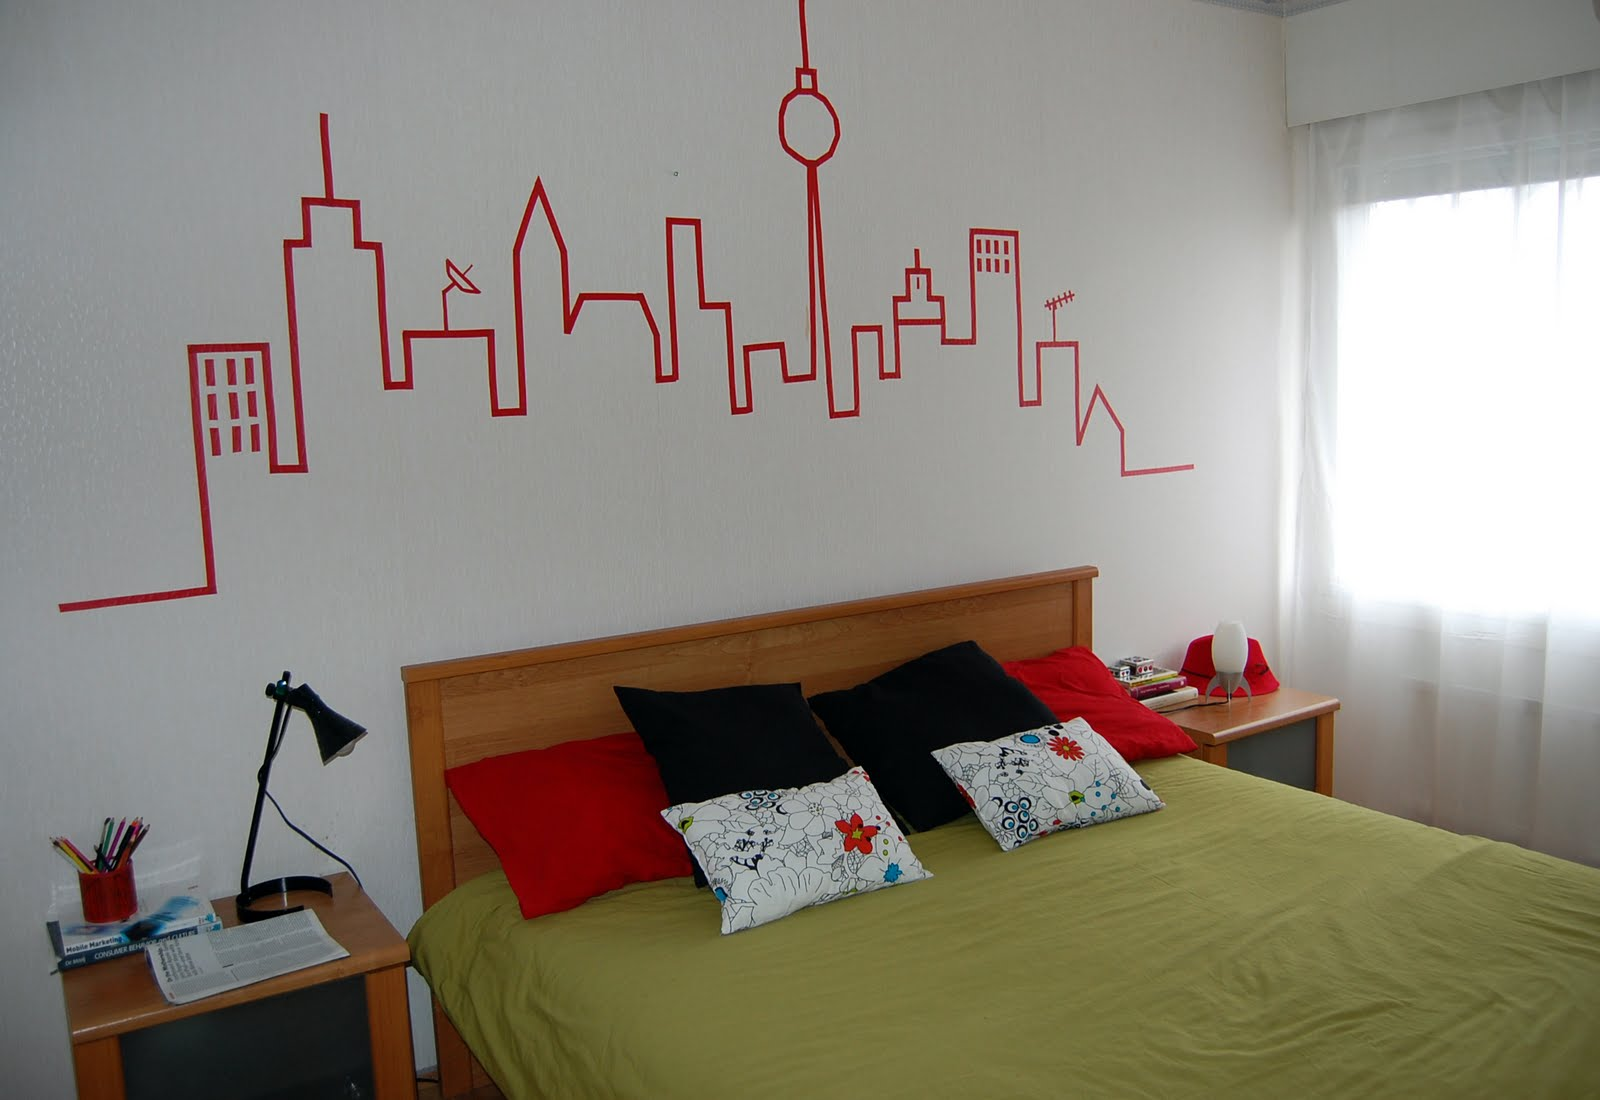 Naifandtastic decoraci n craft hecho a mano for Como decorar una pared con pintura